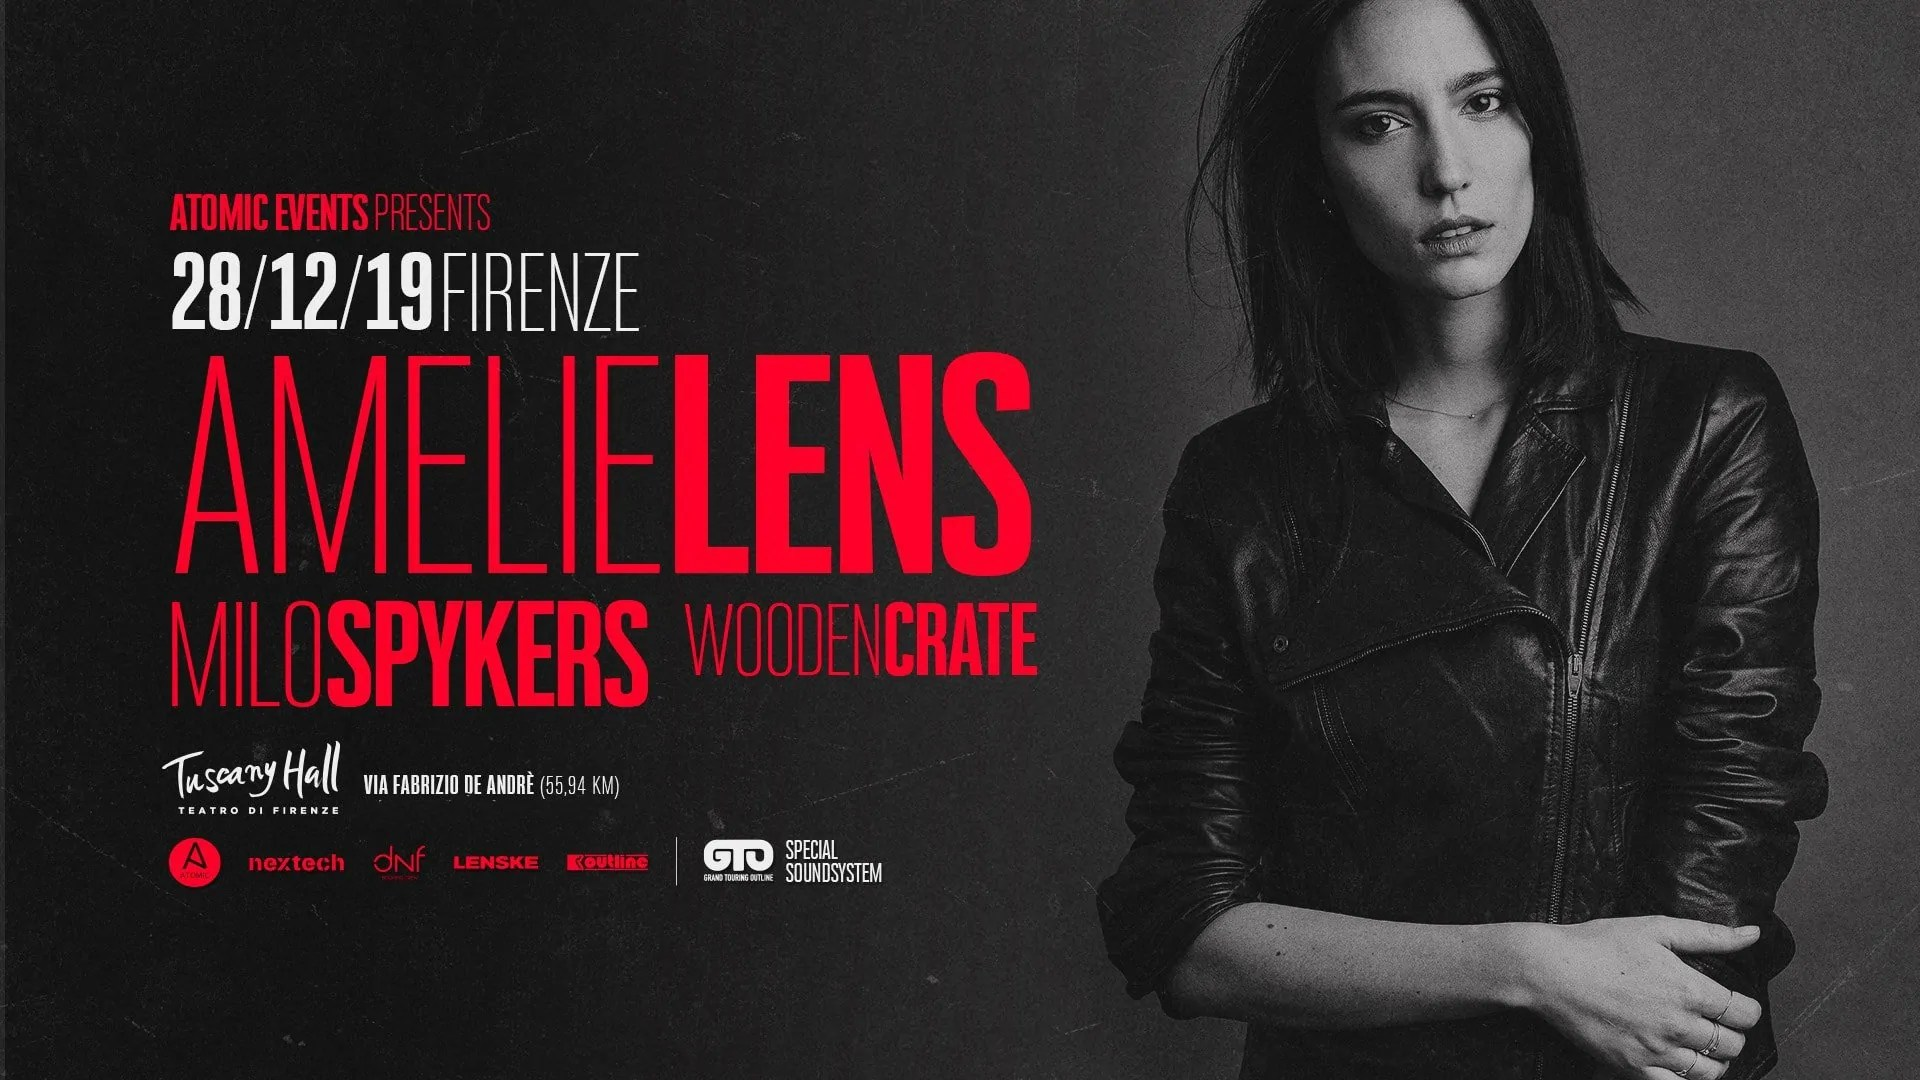 Amelie Lens Firenze Tuscany Hall 28 Dicembre 2019